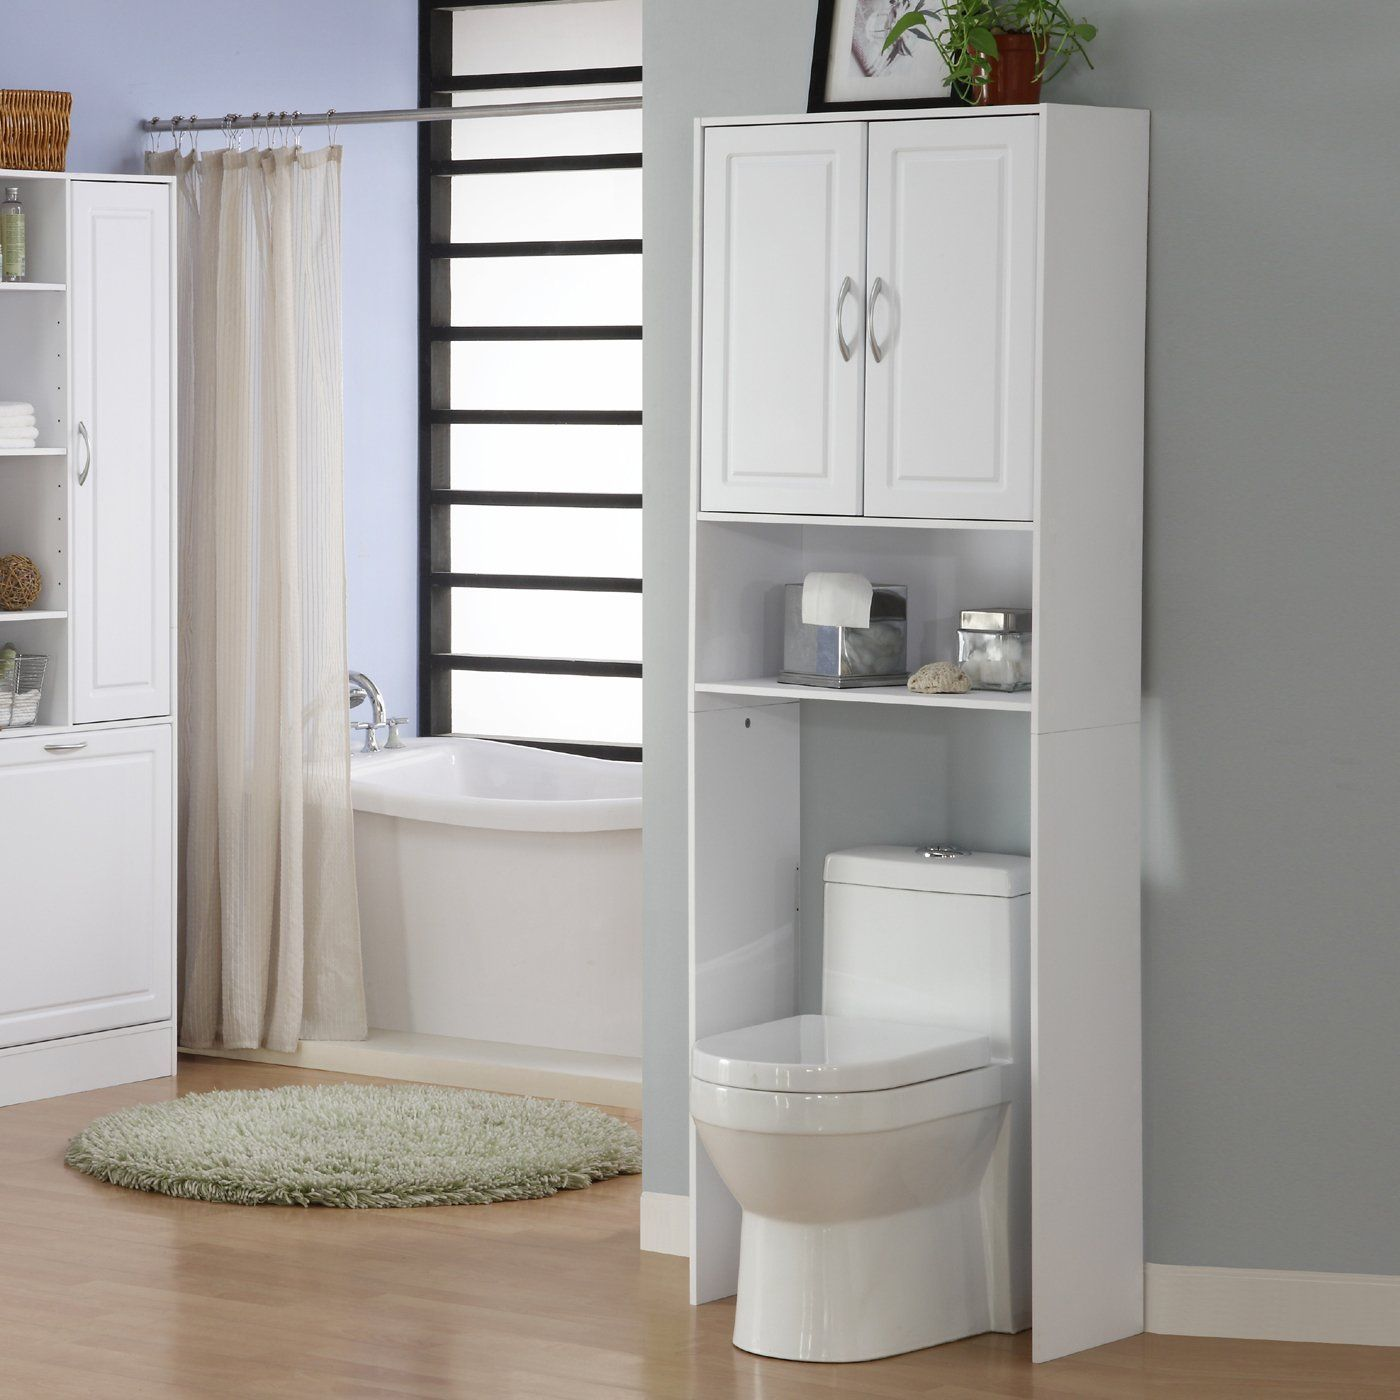 4D Concepts 76421 Double Spacesaver Over-Commode Storage | ATG ...